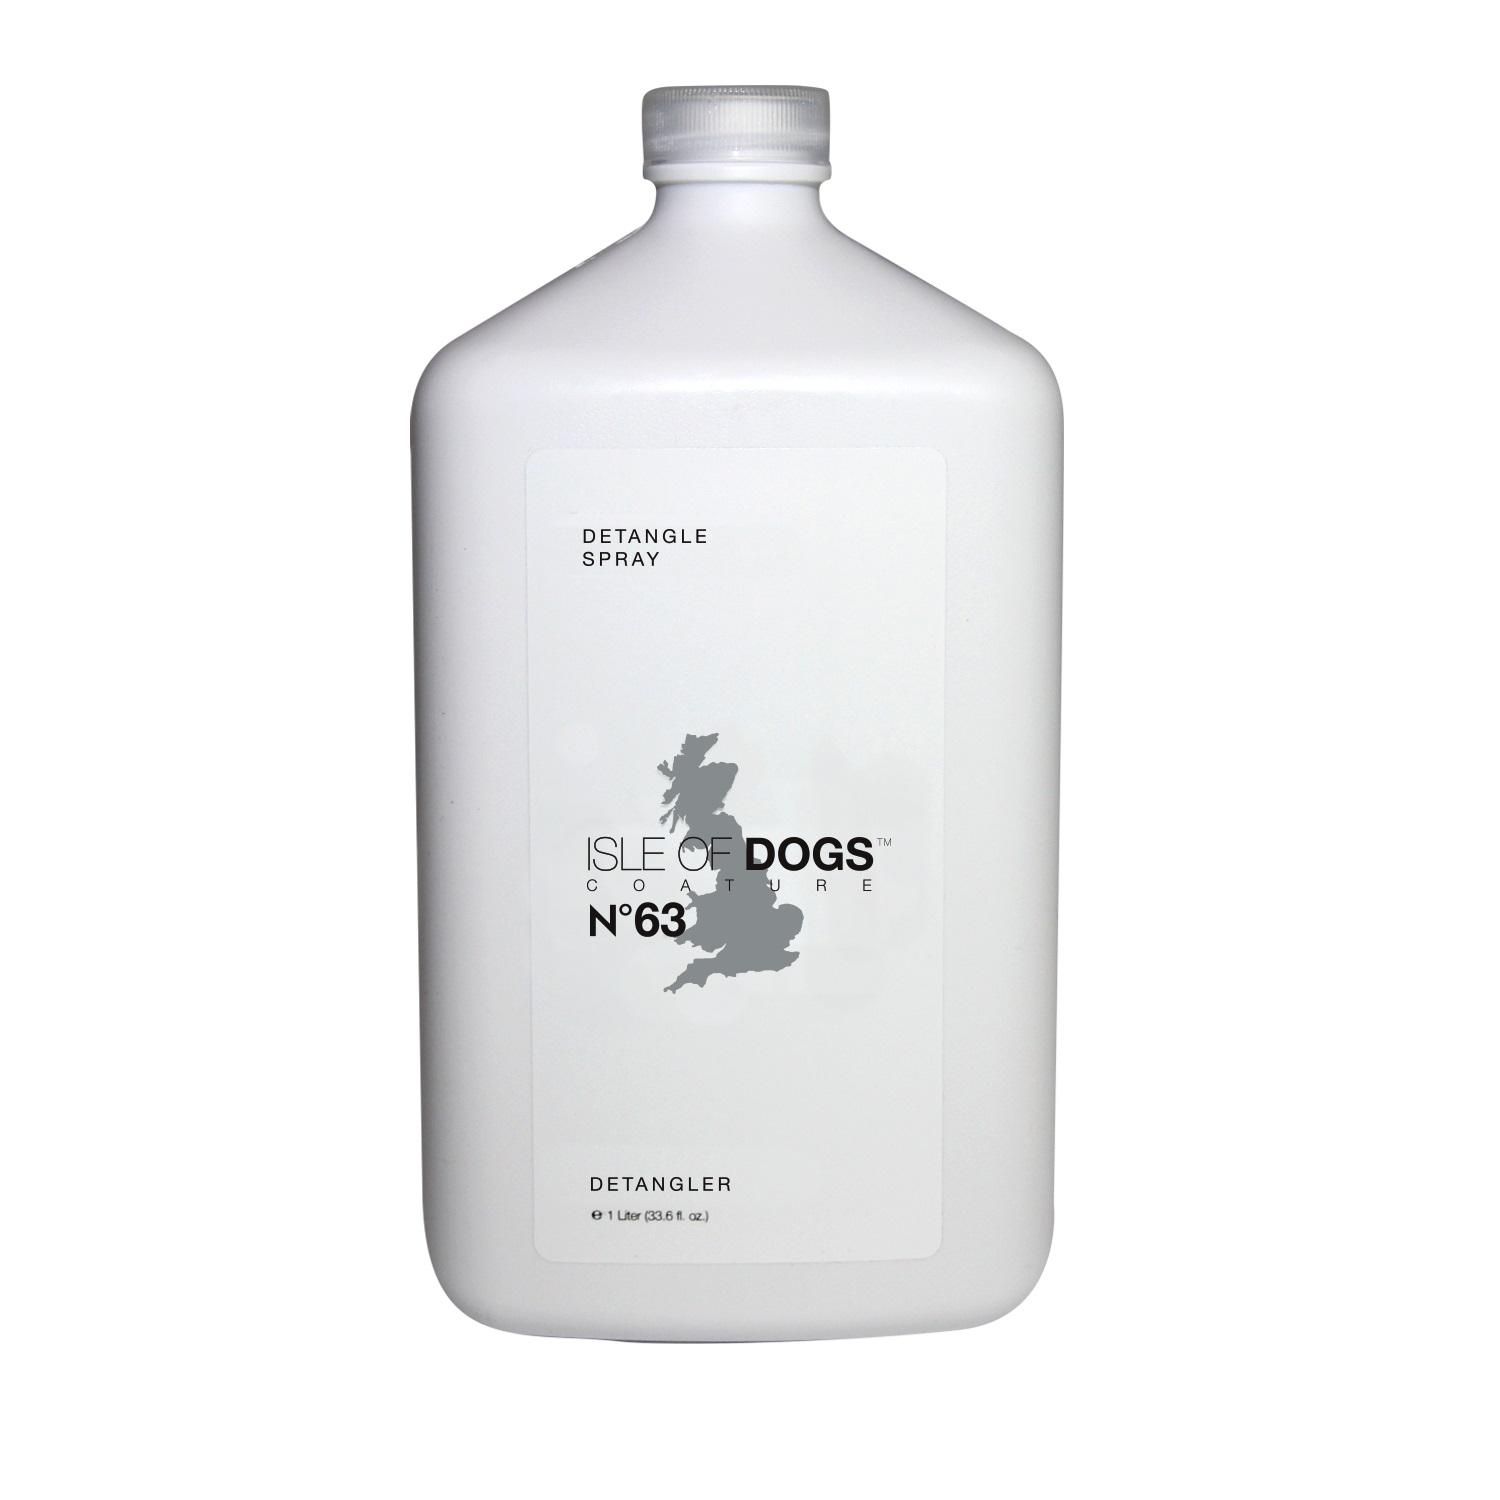 Isle Of Dogs No. 63 Detangle Conditioning Mist 1L